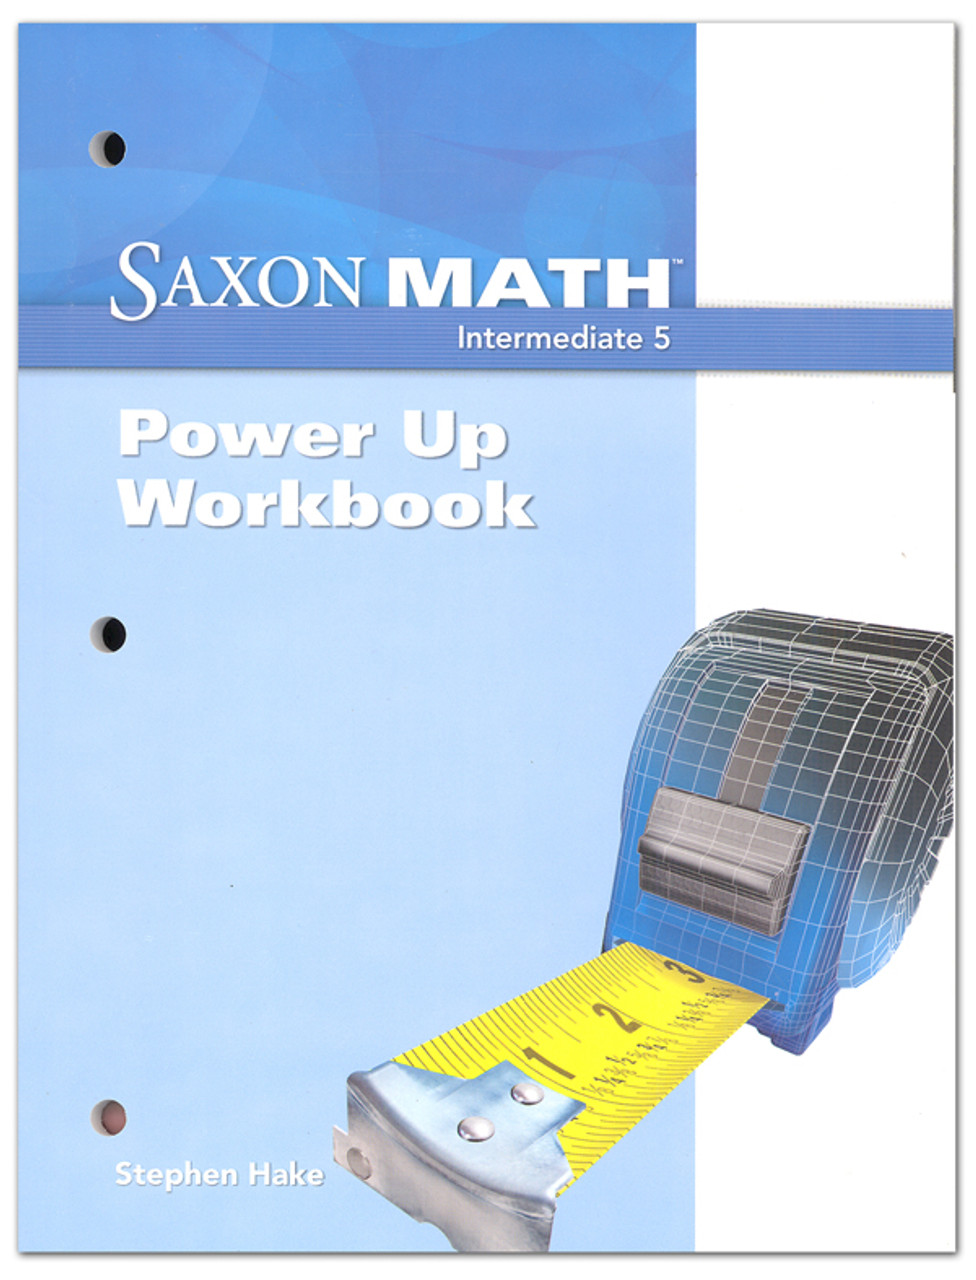 Saxon Math Grade 5 Intermediate Power Up Workbook - Classroom Resource  Center [ 1280 x 976 Pixel ]